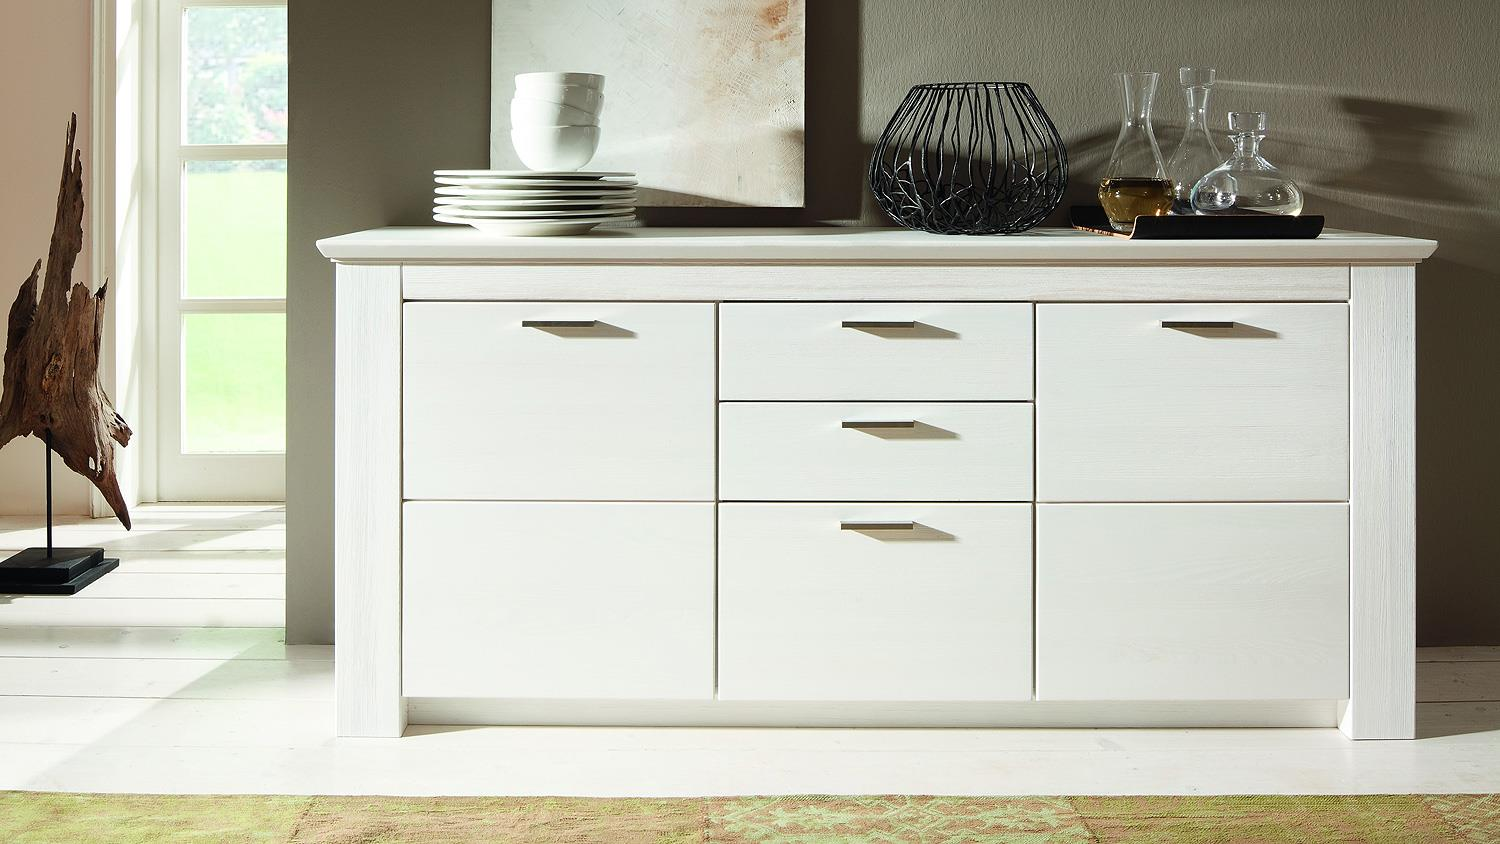 country sideboard mit einem boden weiss bxhxt 100x80x30. Black Bedroom Furniture Sets. Home Design Ideas